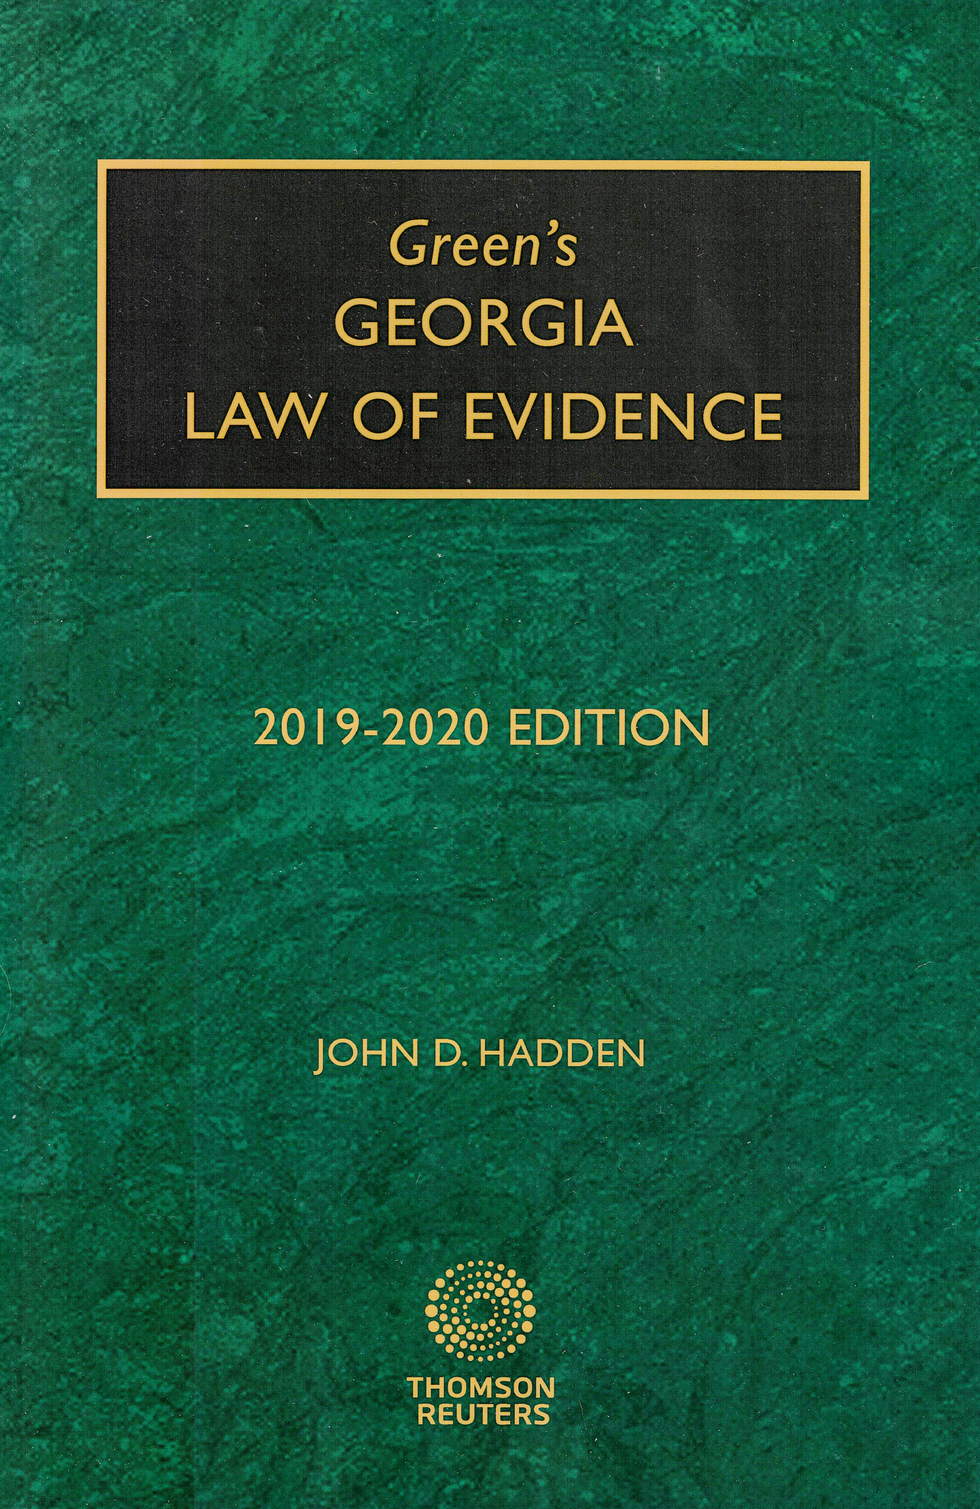 Green's Georgia Law of Evidence by John D. Hadden